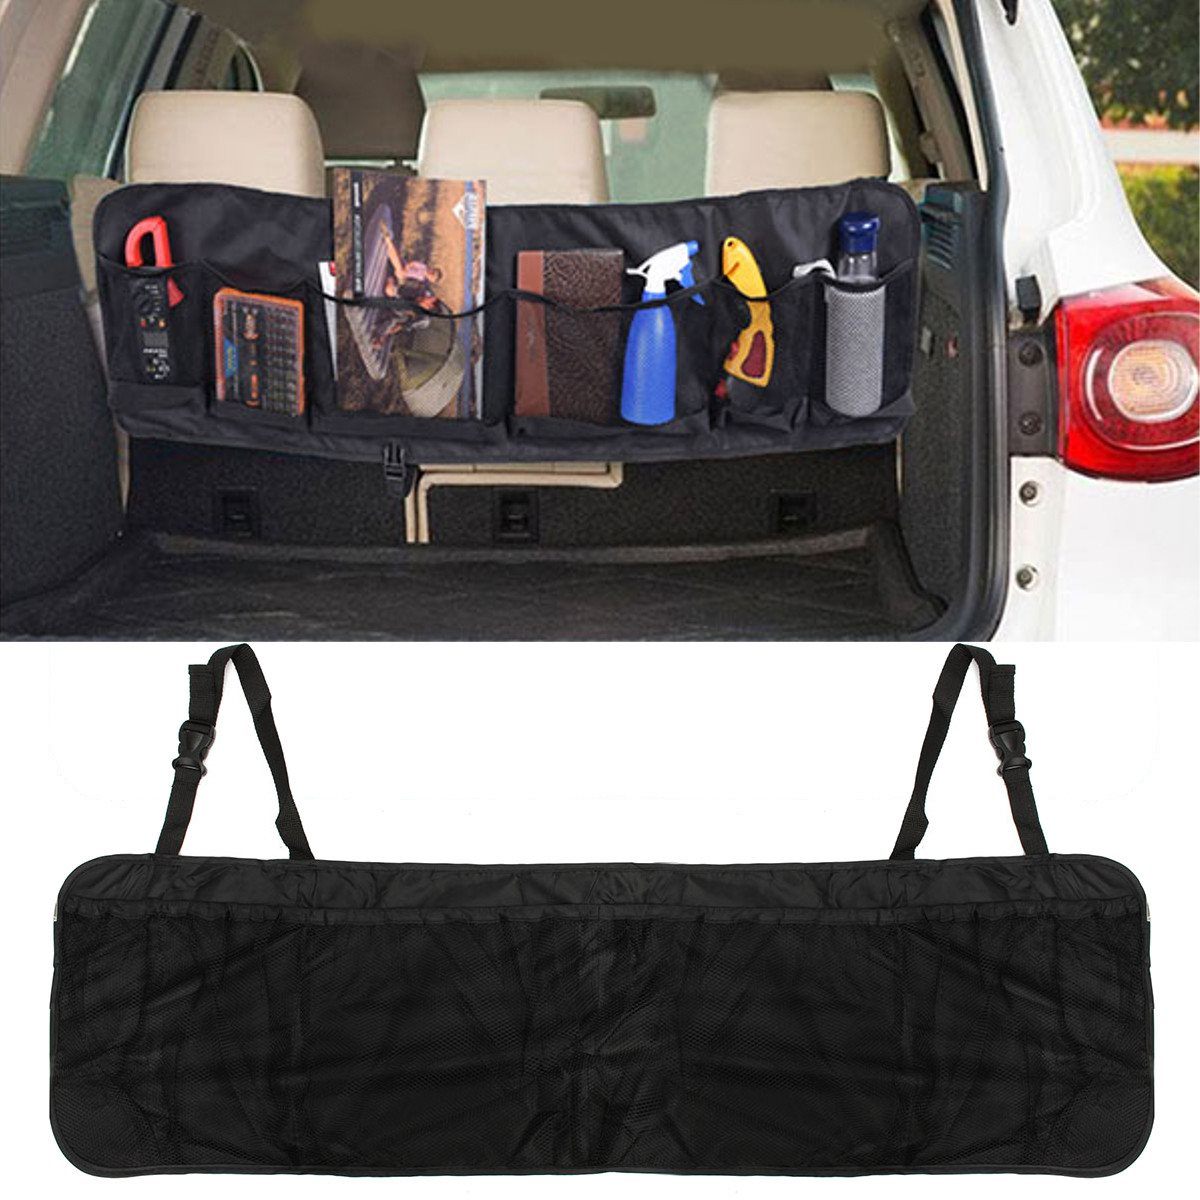 110 x 34cm Car Seat Back Tidy Organiser Multi-Pocket Auto Travel Hanging Storage Bag Holder Auto Accessories 1 pcs auto care car seat organizer cooler bag multi pocket arrangement bag back seat chair car styling seat cover organiser